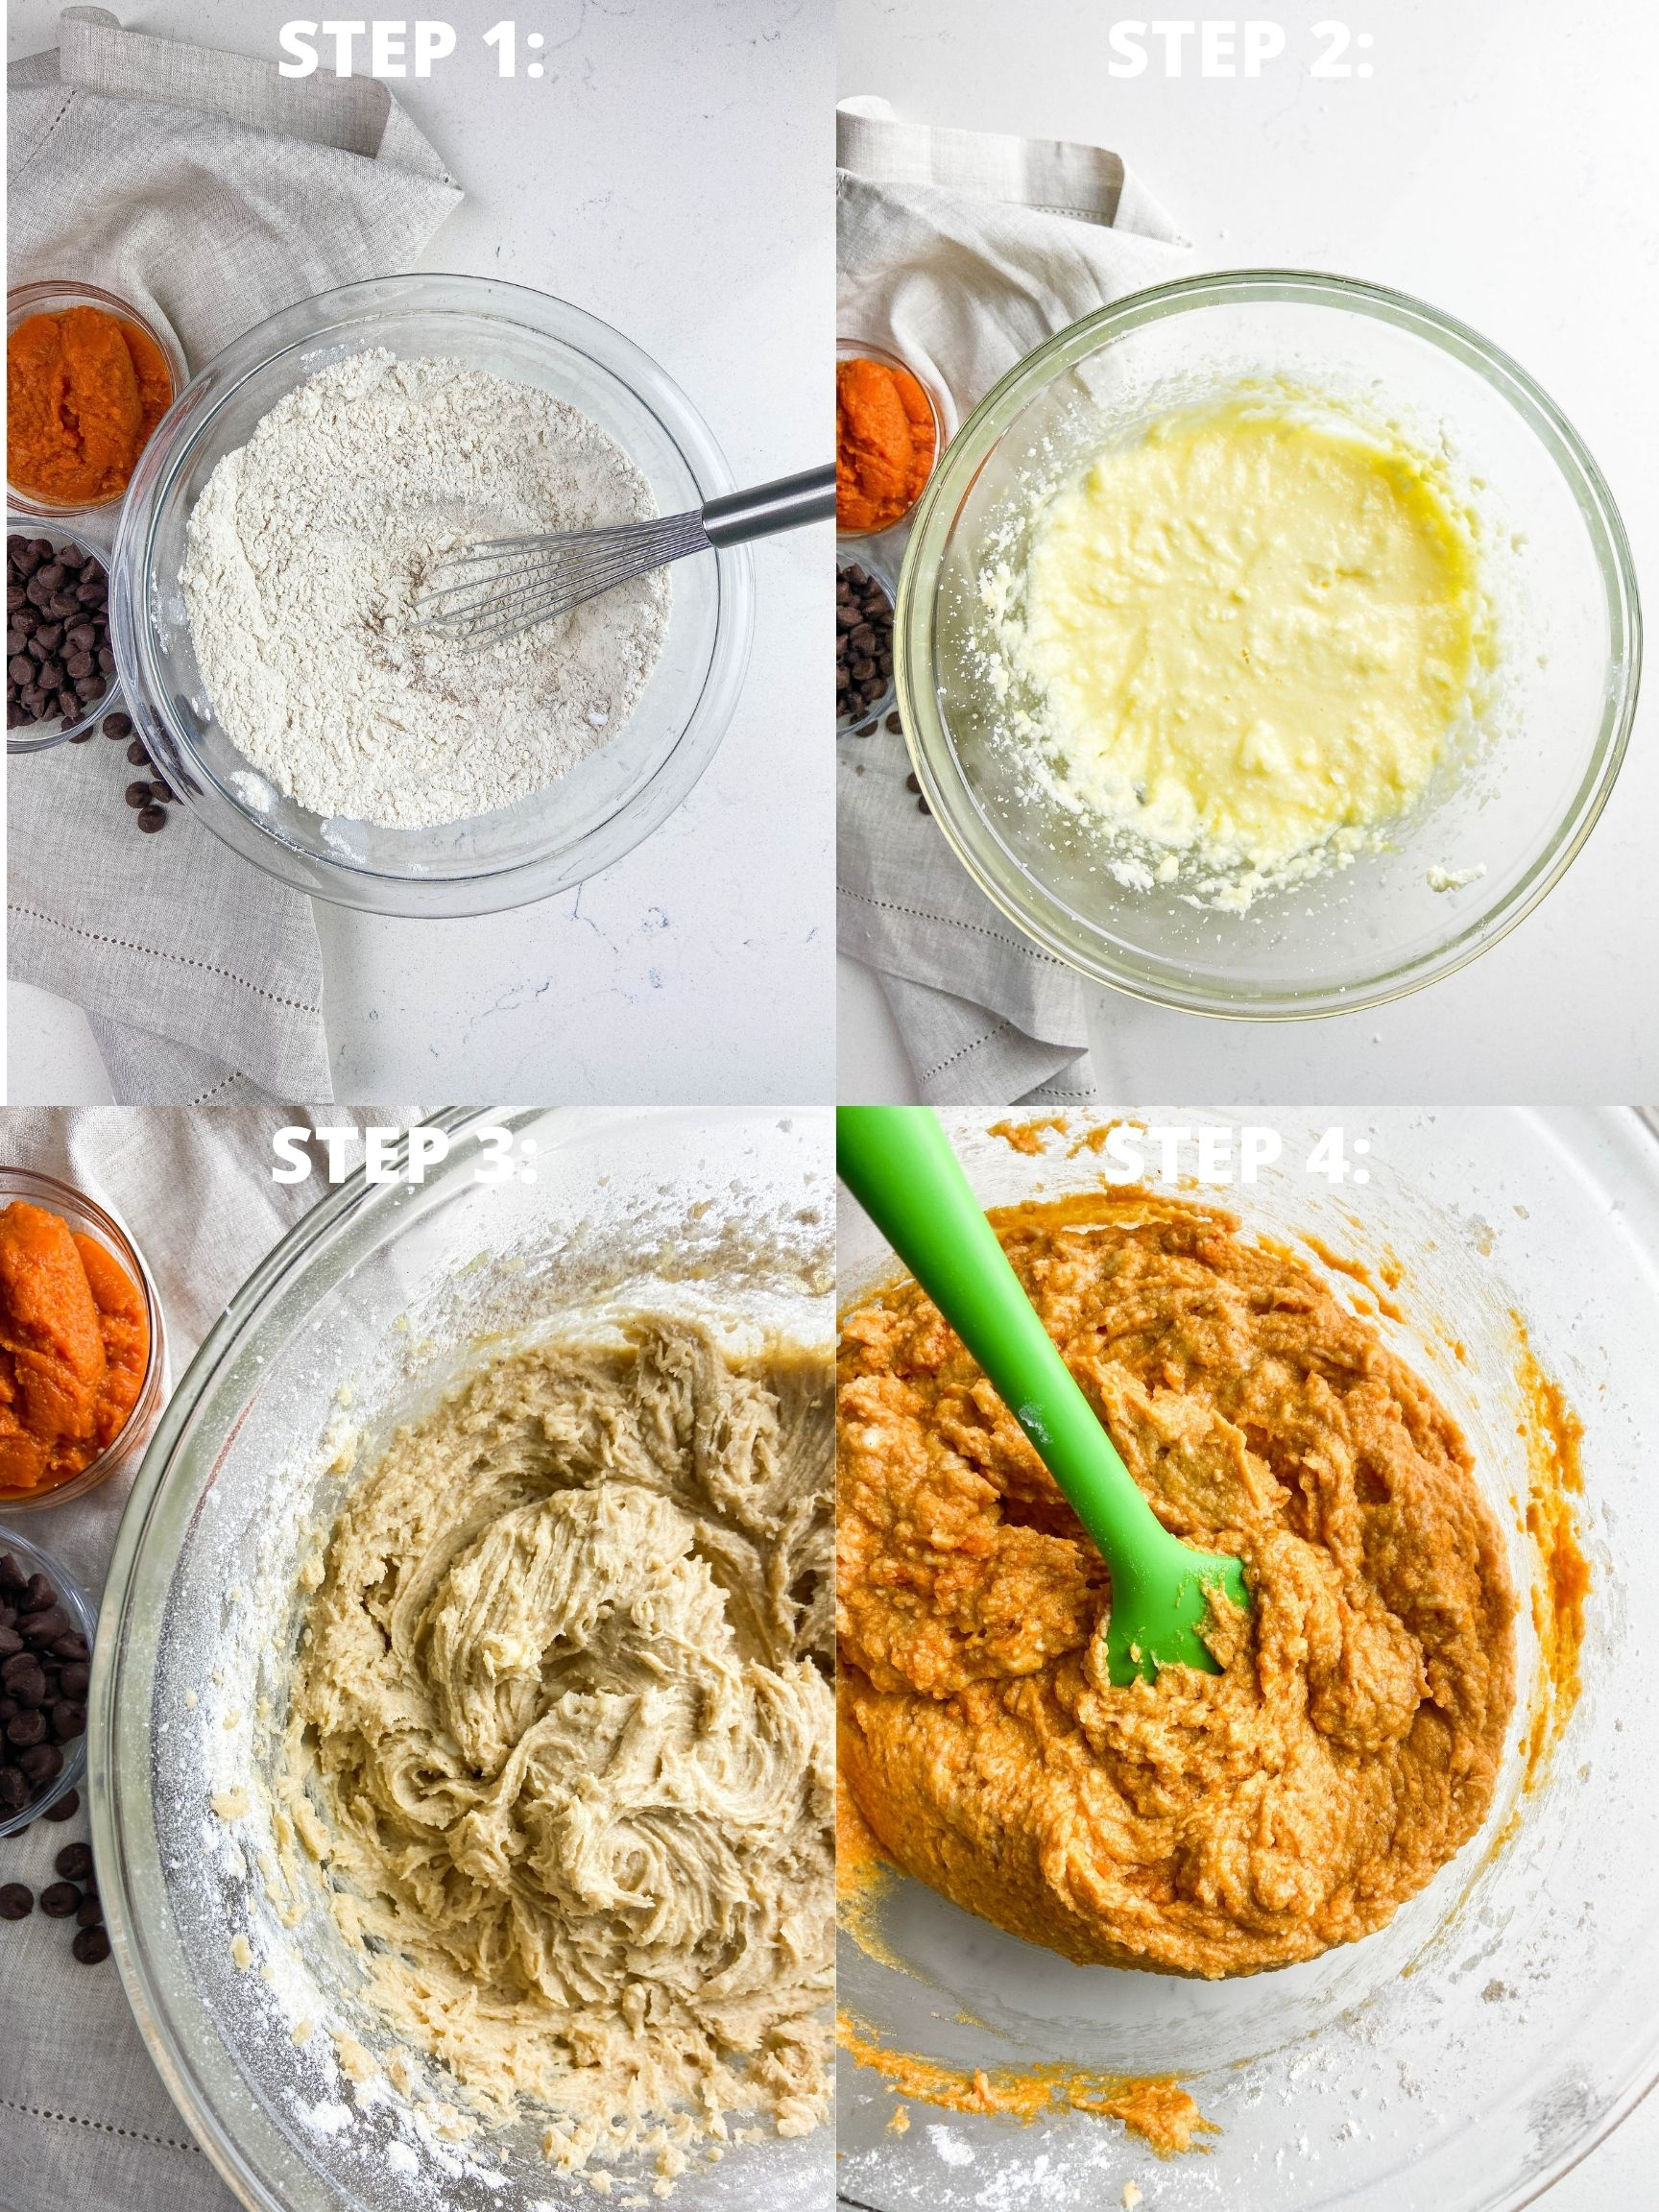 Step by step photos showing how to make a pumpkin cake.